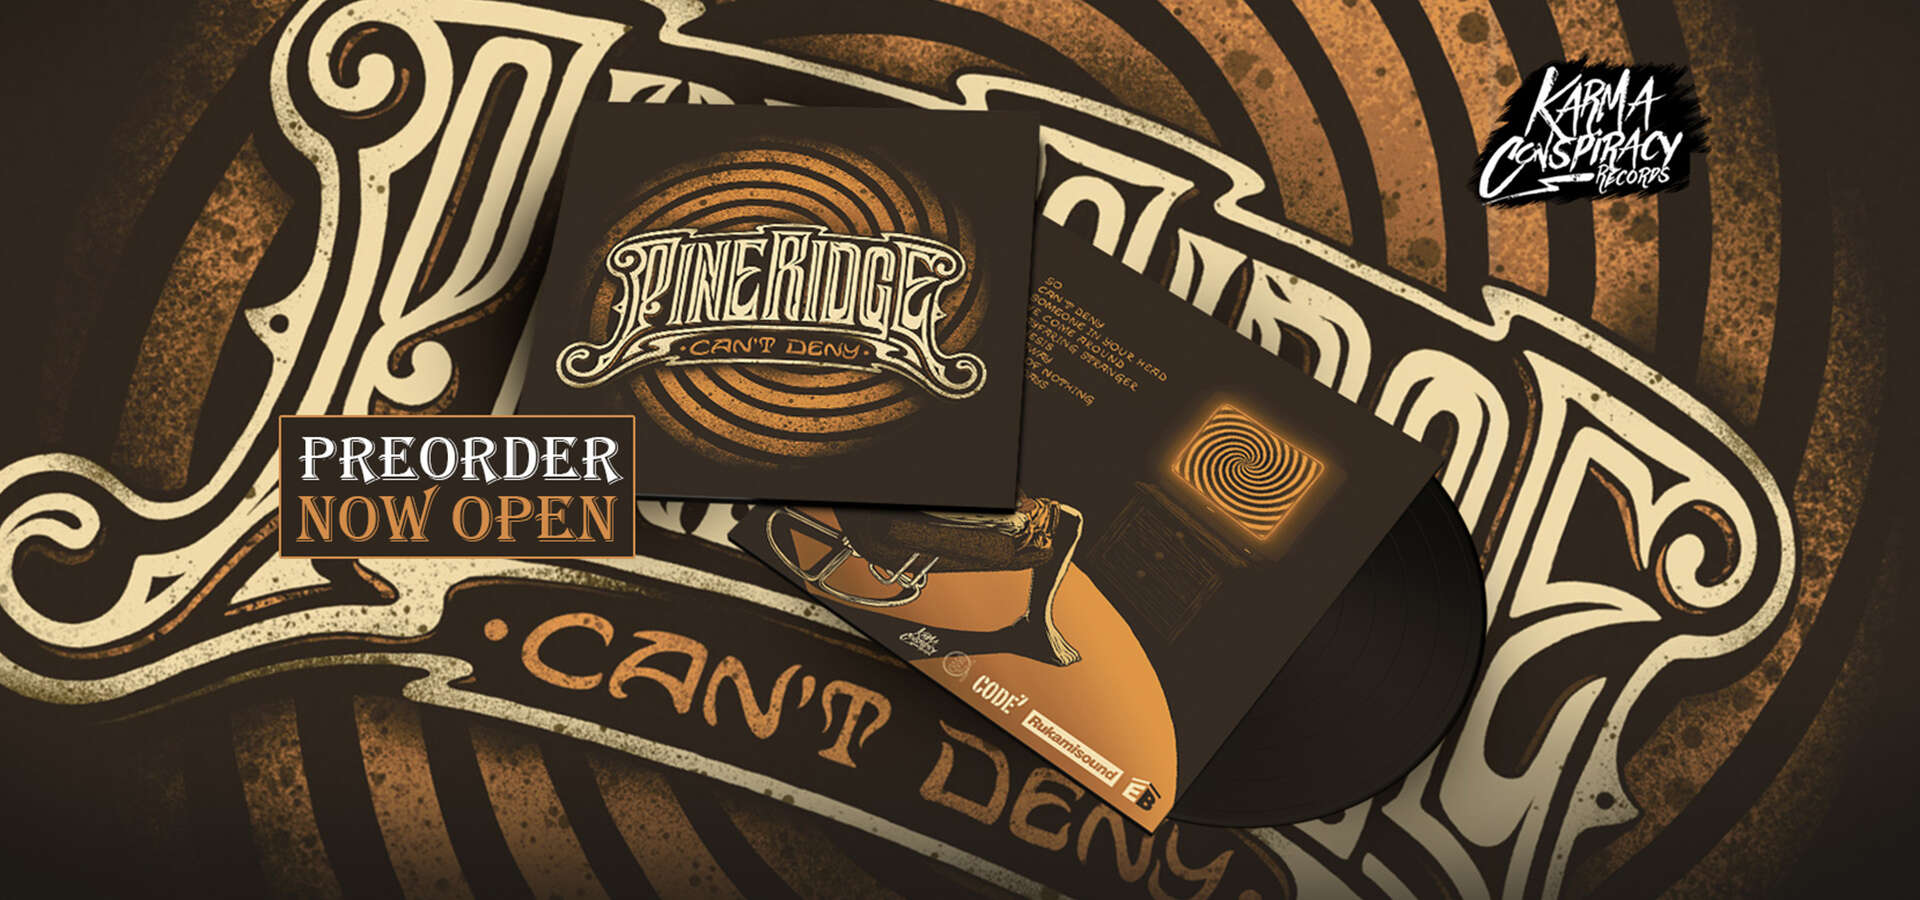 PINE RIDGE CAN'T DENY PREORDERS OPEN